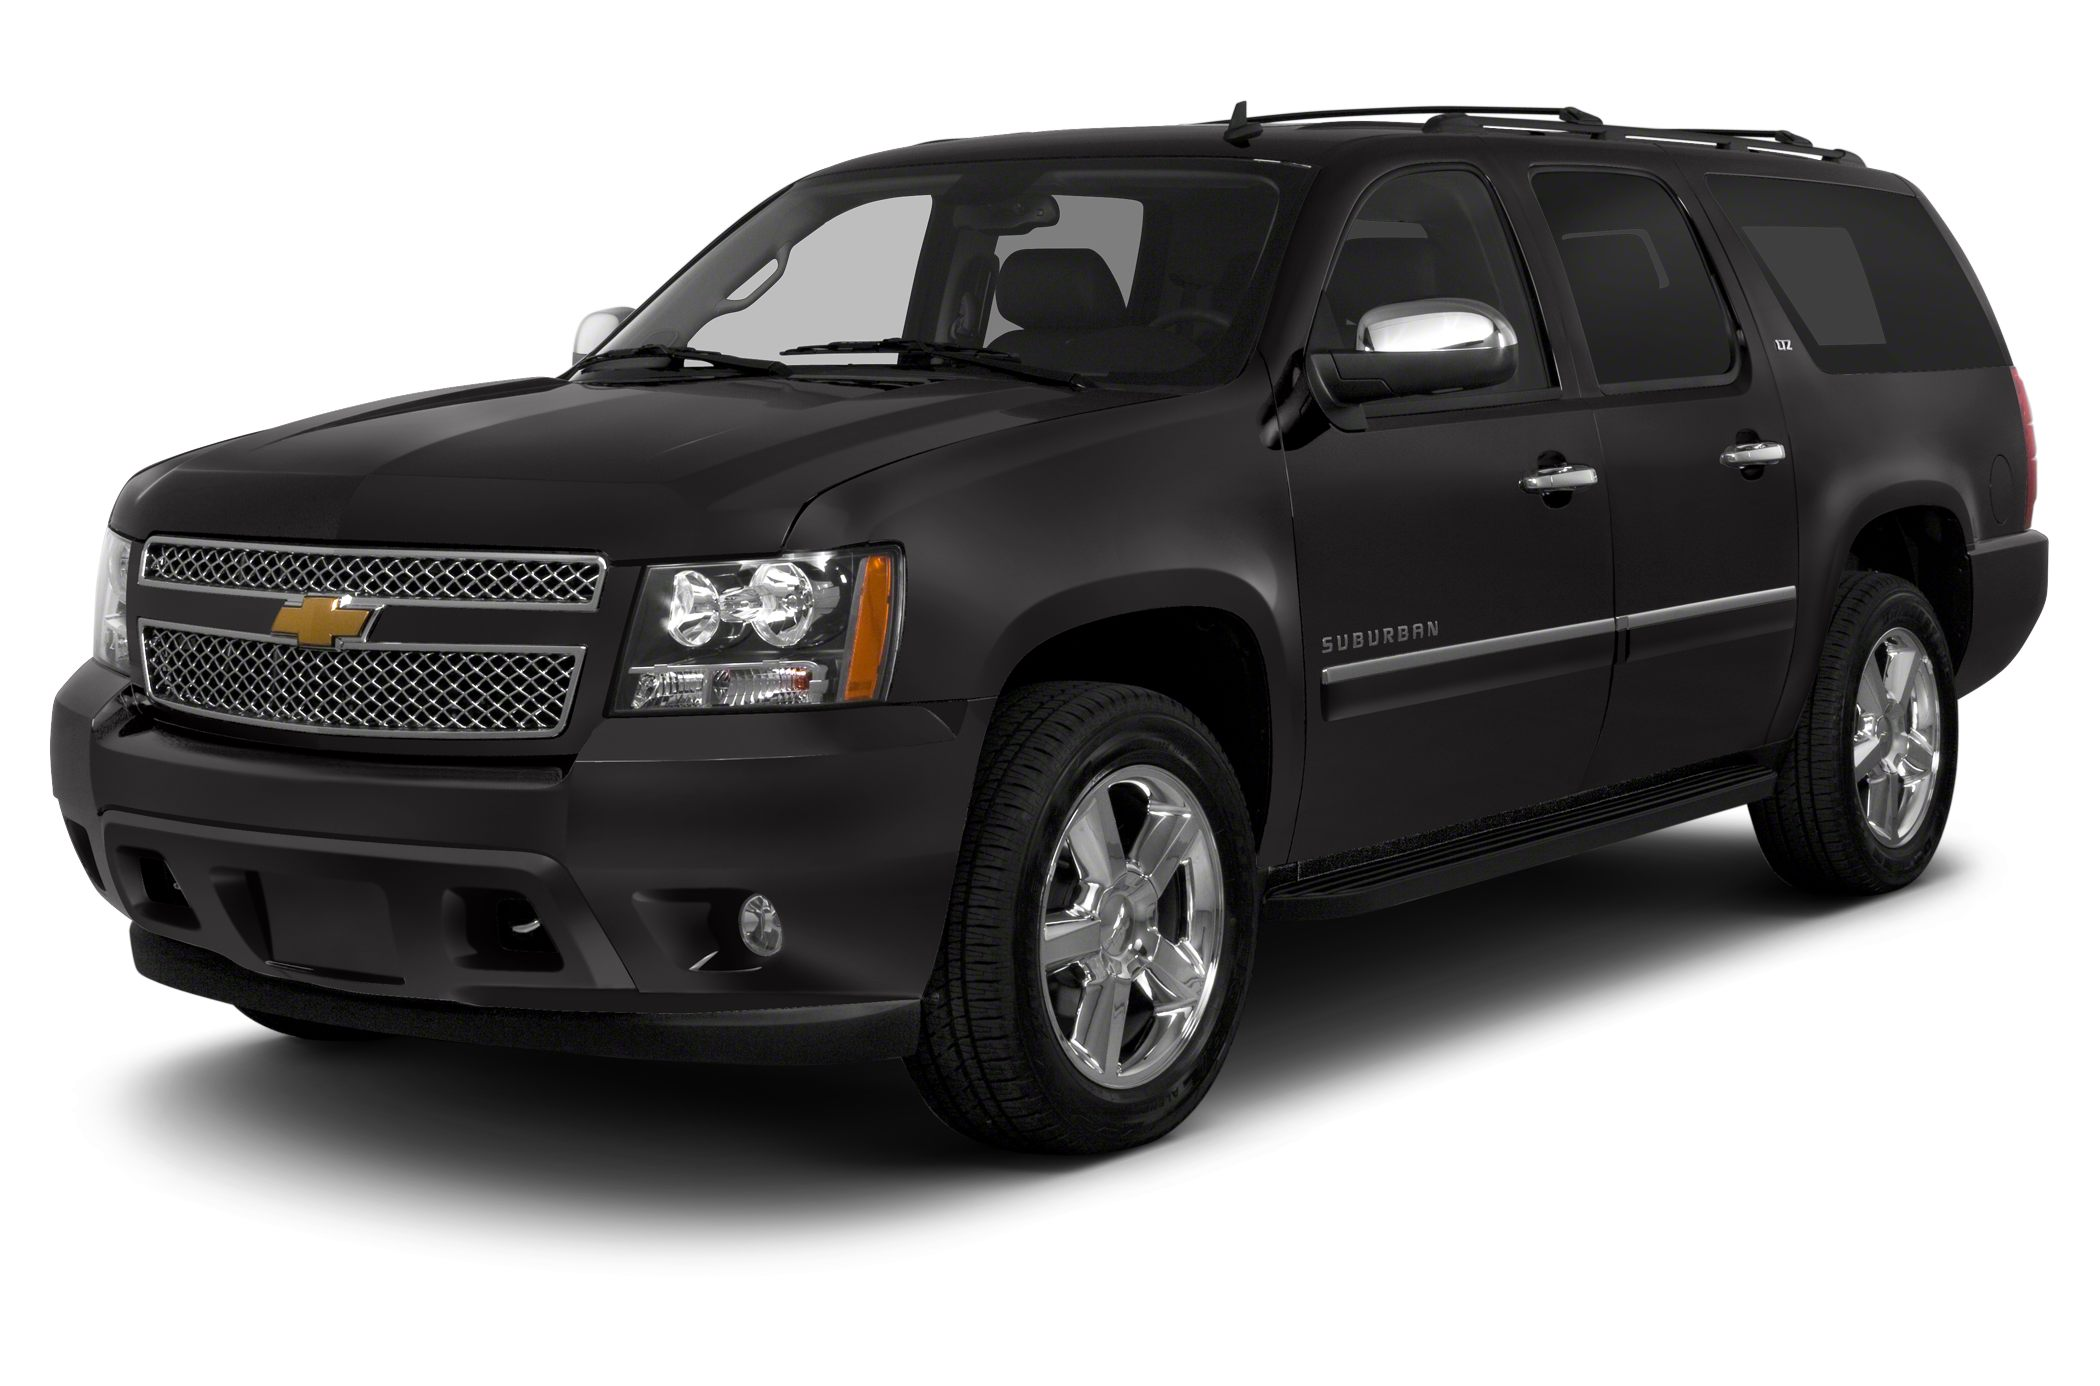 2013 Chevrolet Suburban 1500 LT SUV for sale in Moultrie for $33,995 with 58,454 miles